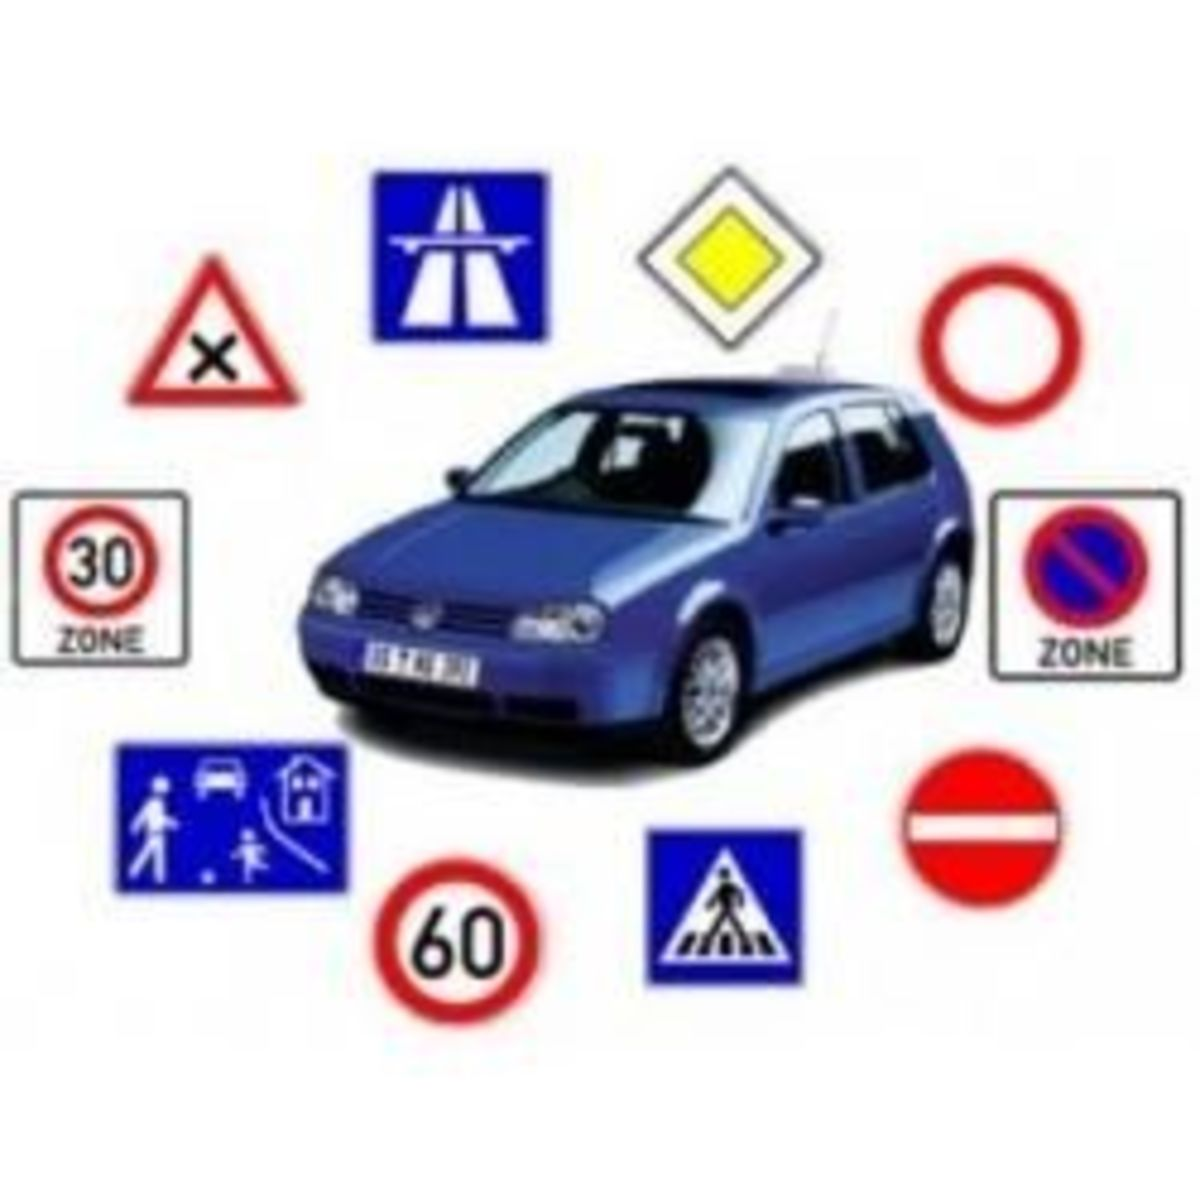 Online driving theory tests in Romania